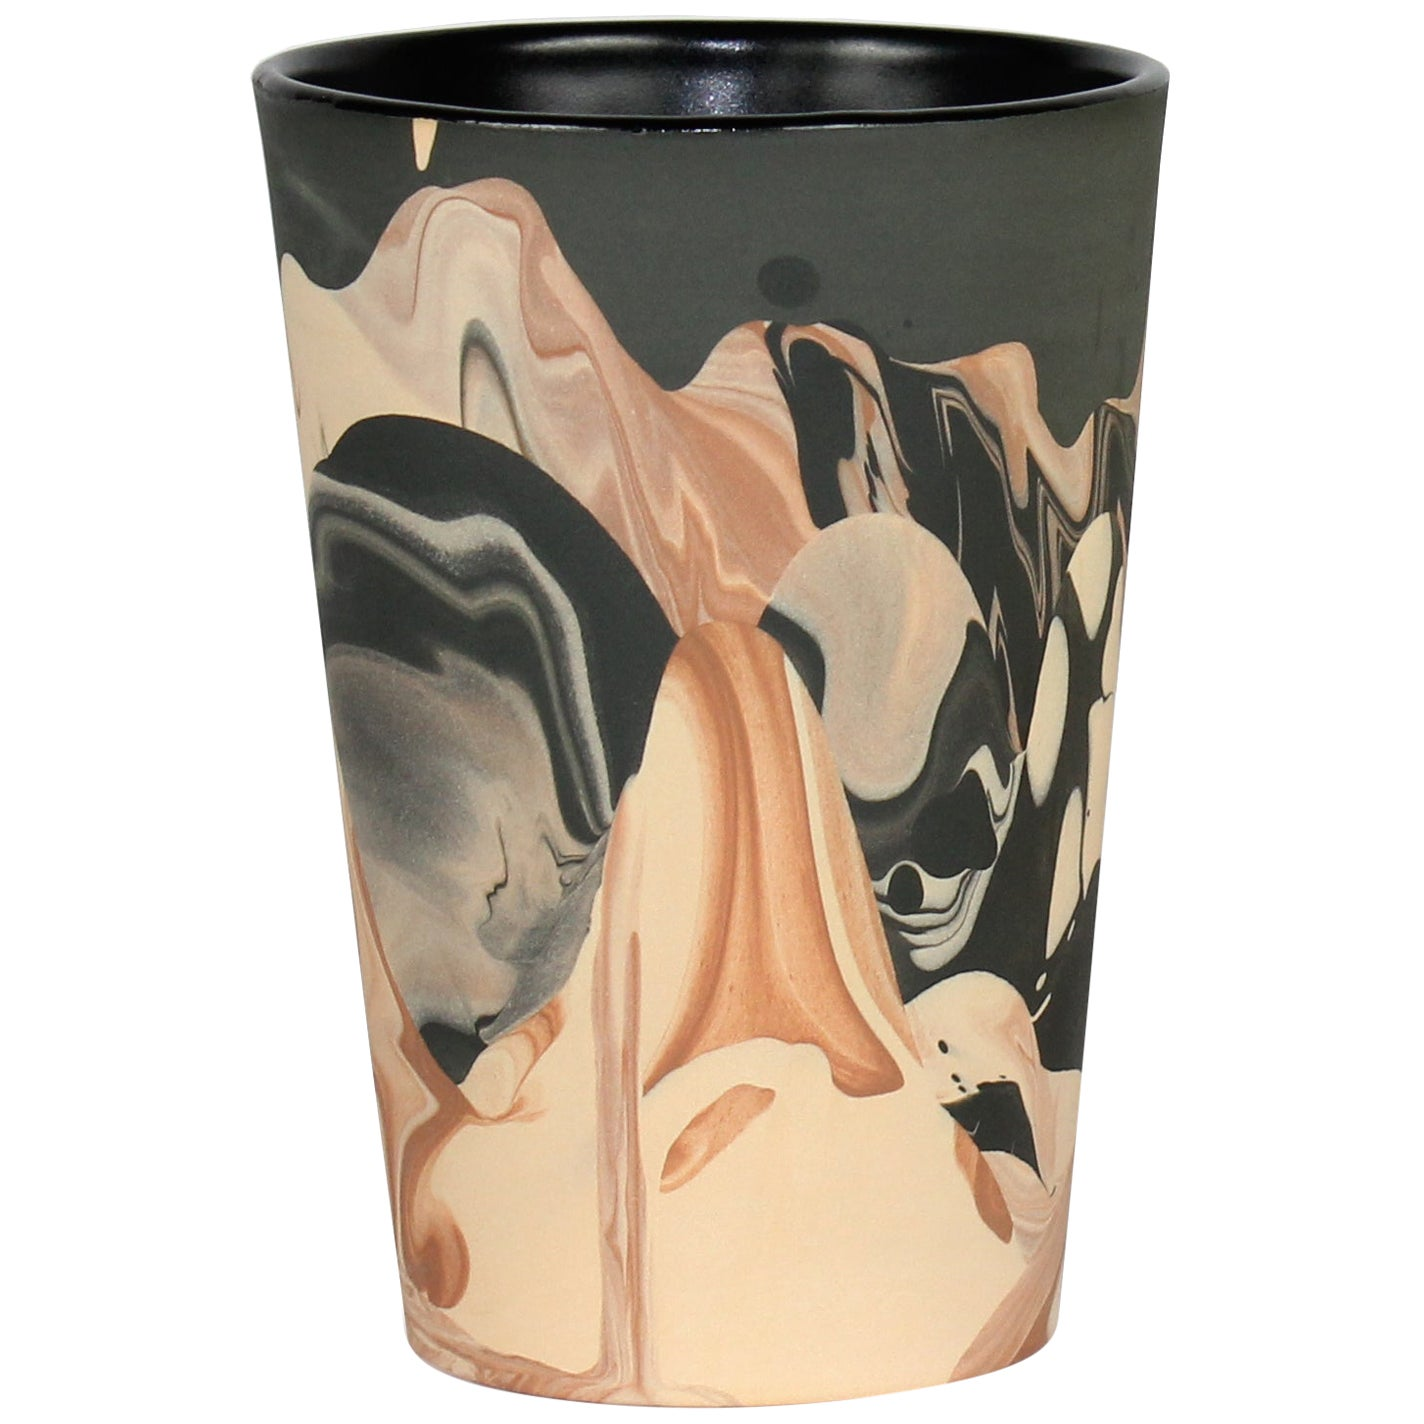 Contemporary Handmade Marbled Ceramic Tumbler Cup in Black, Peach and Brown